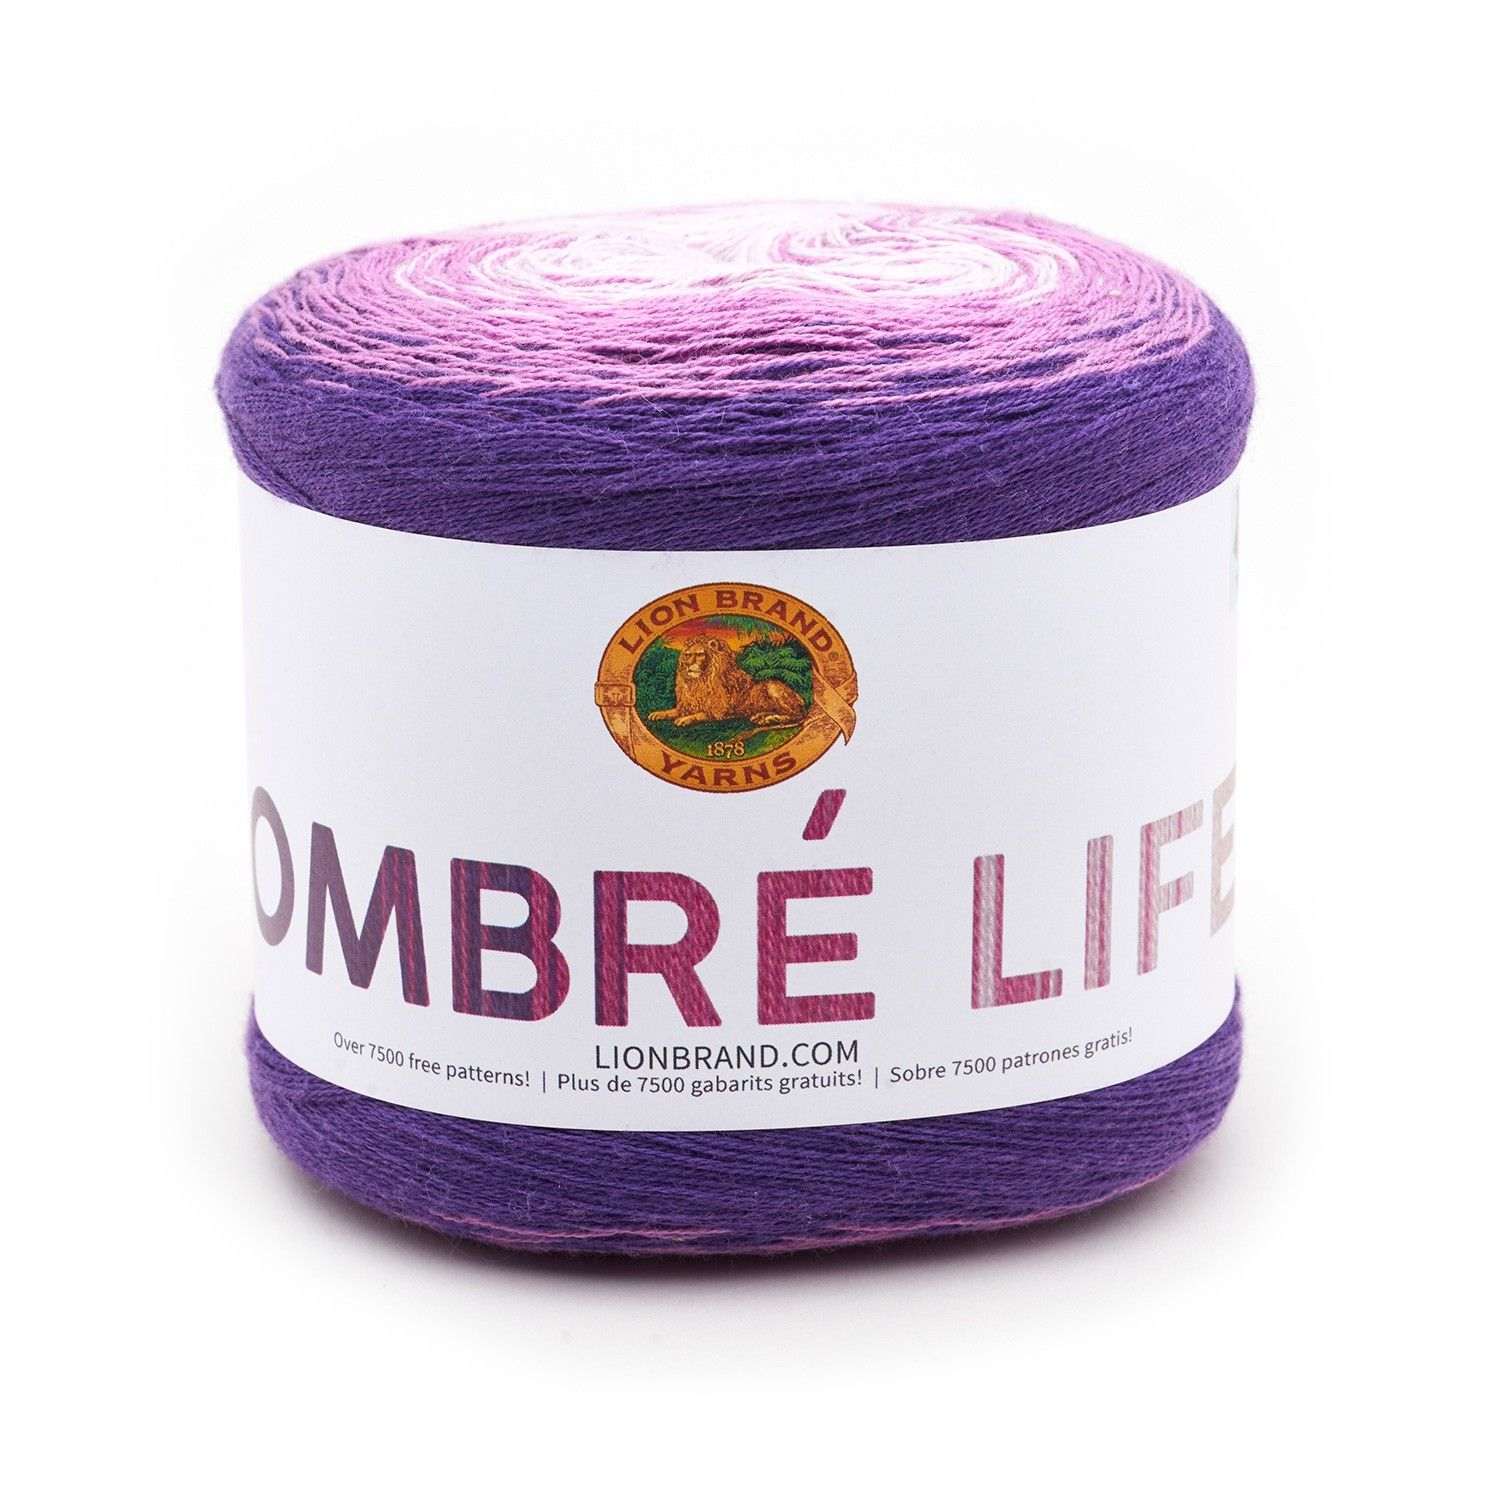 Ombre Life Yarn | crafty | Pinterest | Knitting, Crochet and ...